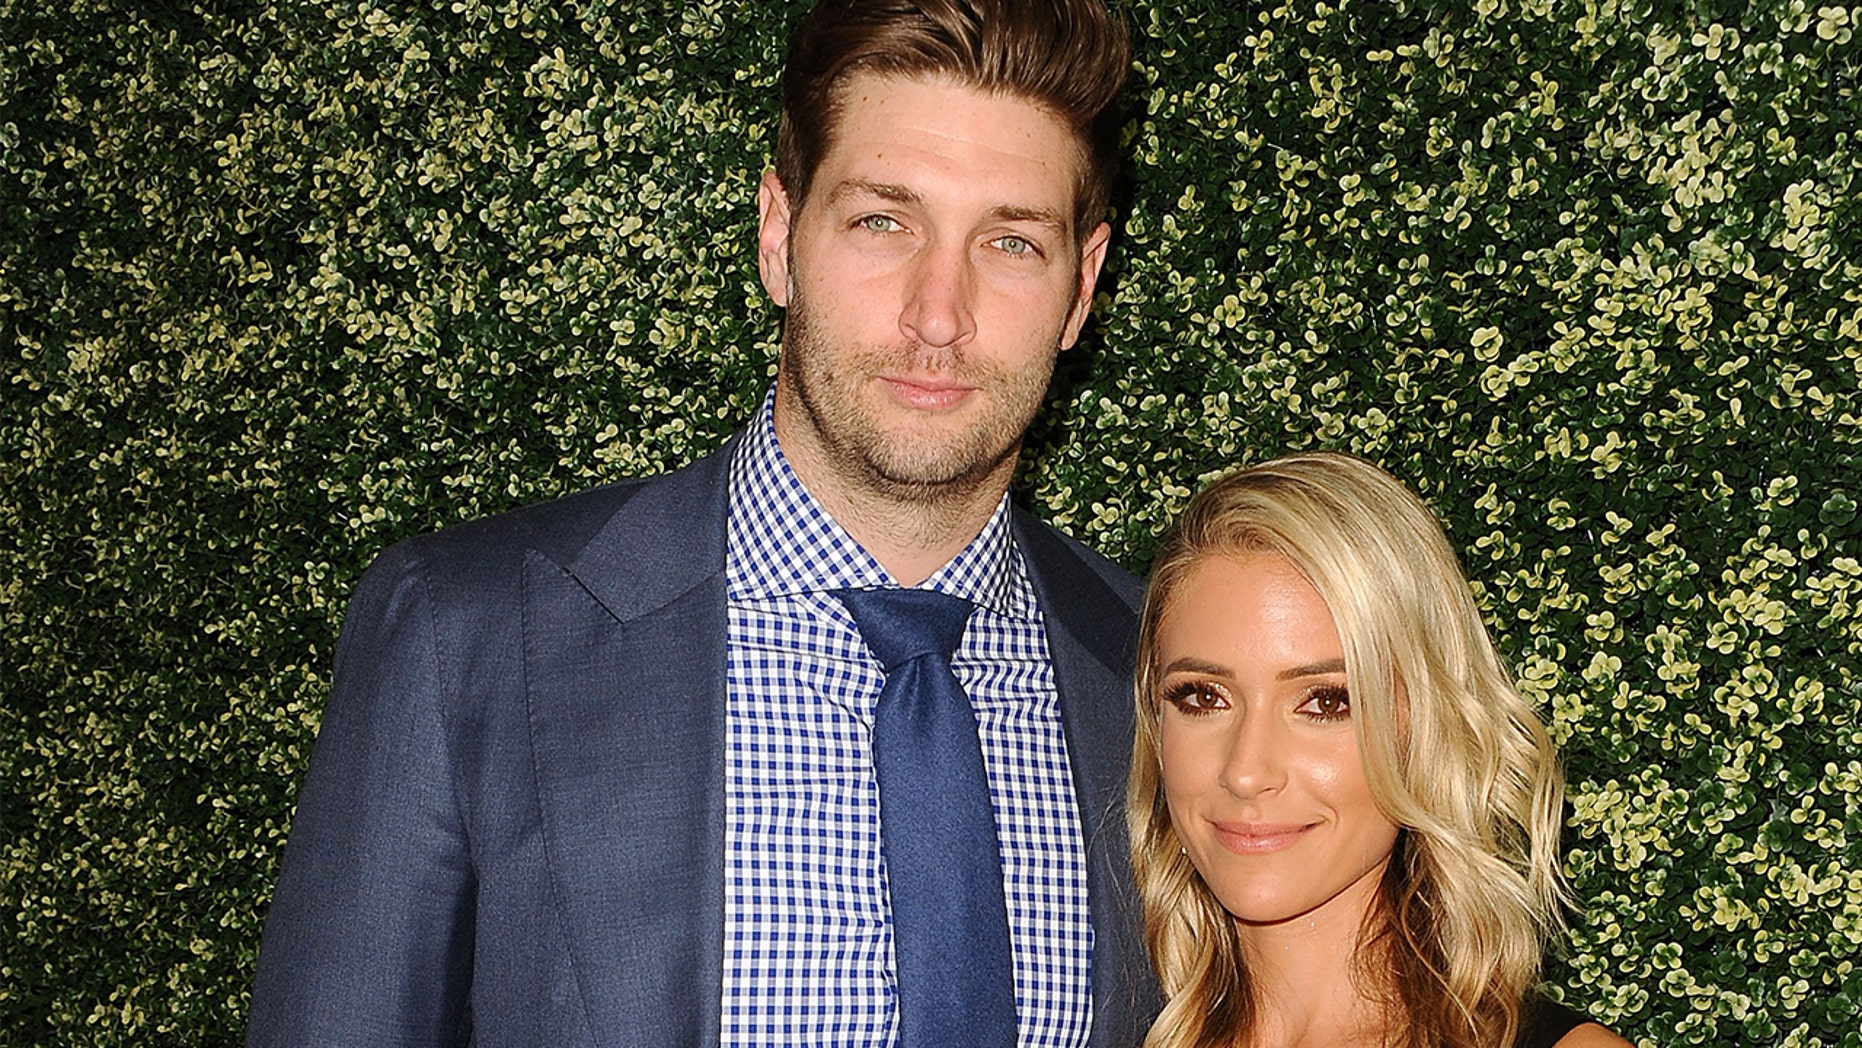 Kristin Cavallari Wedding.Kristin Cavallari Admits She And Jay Cutler Have Problems In Their